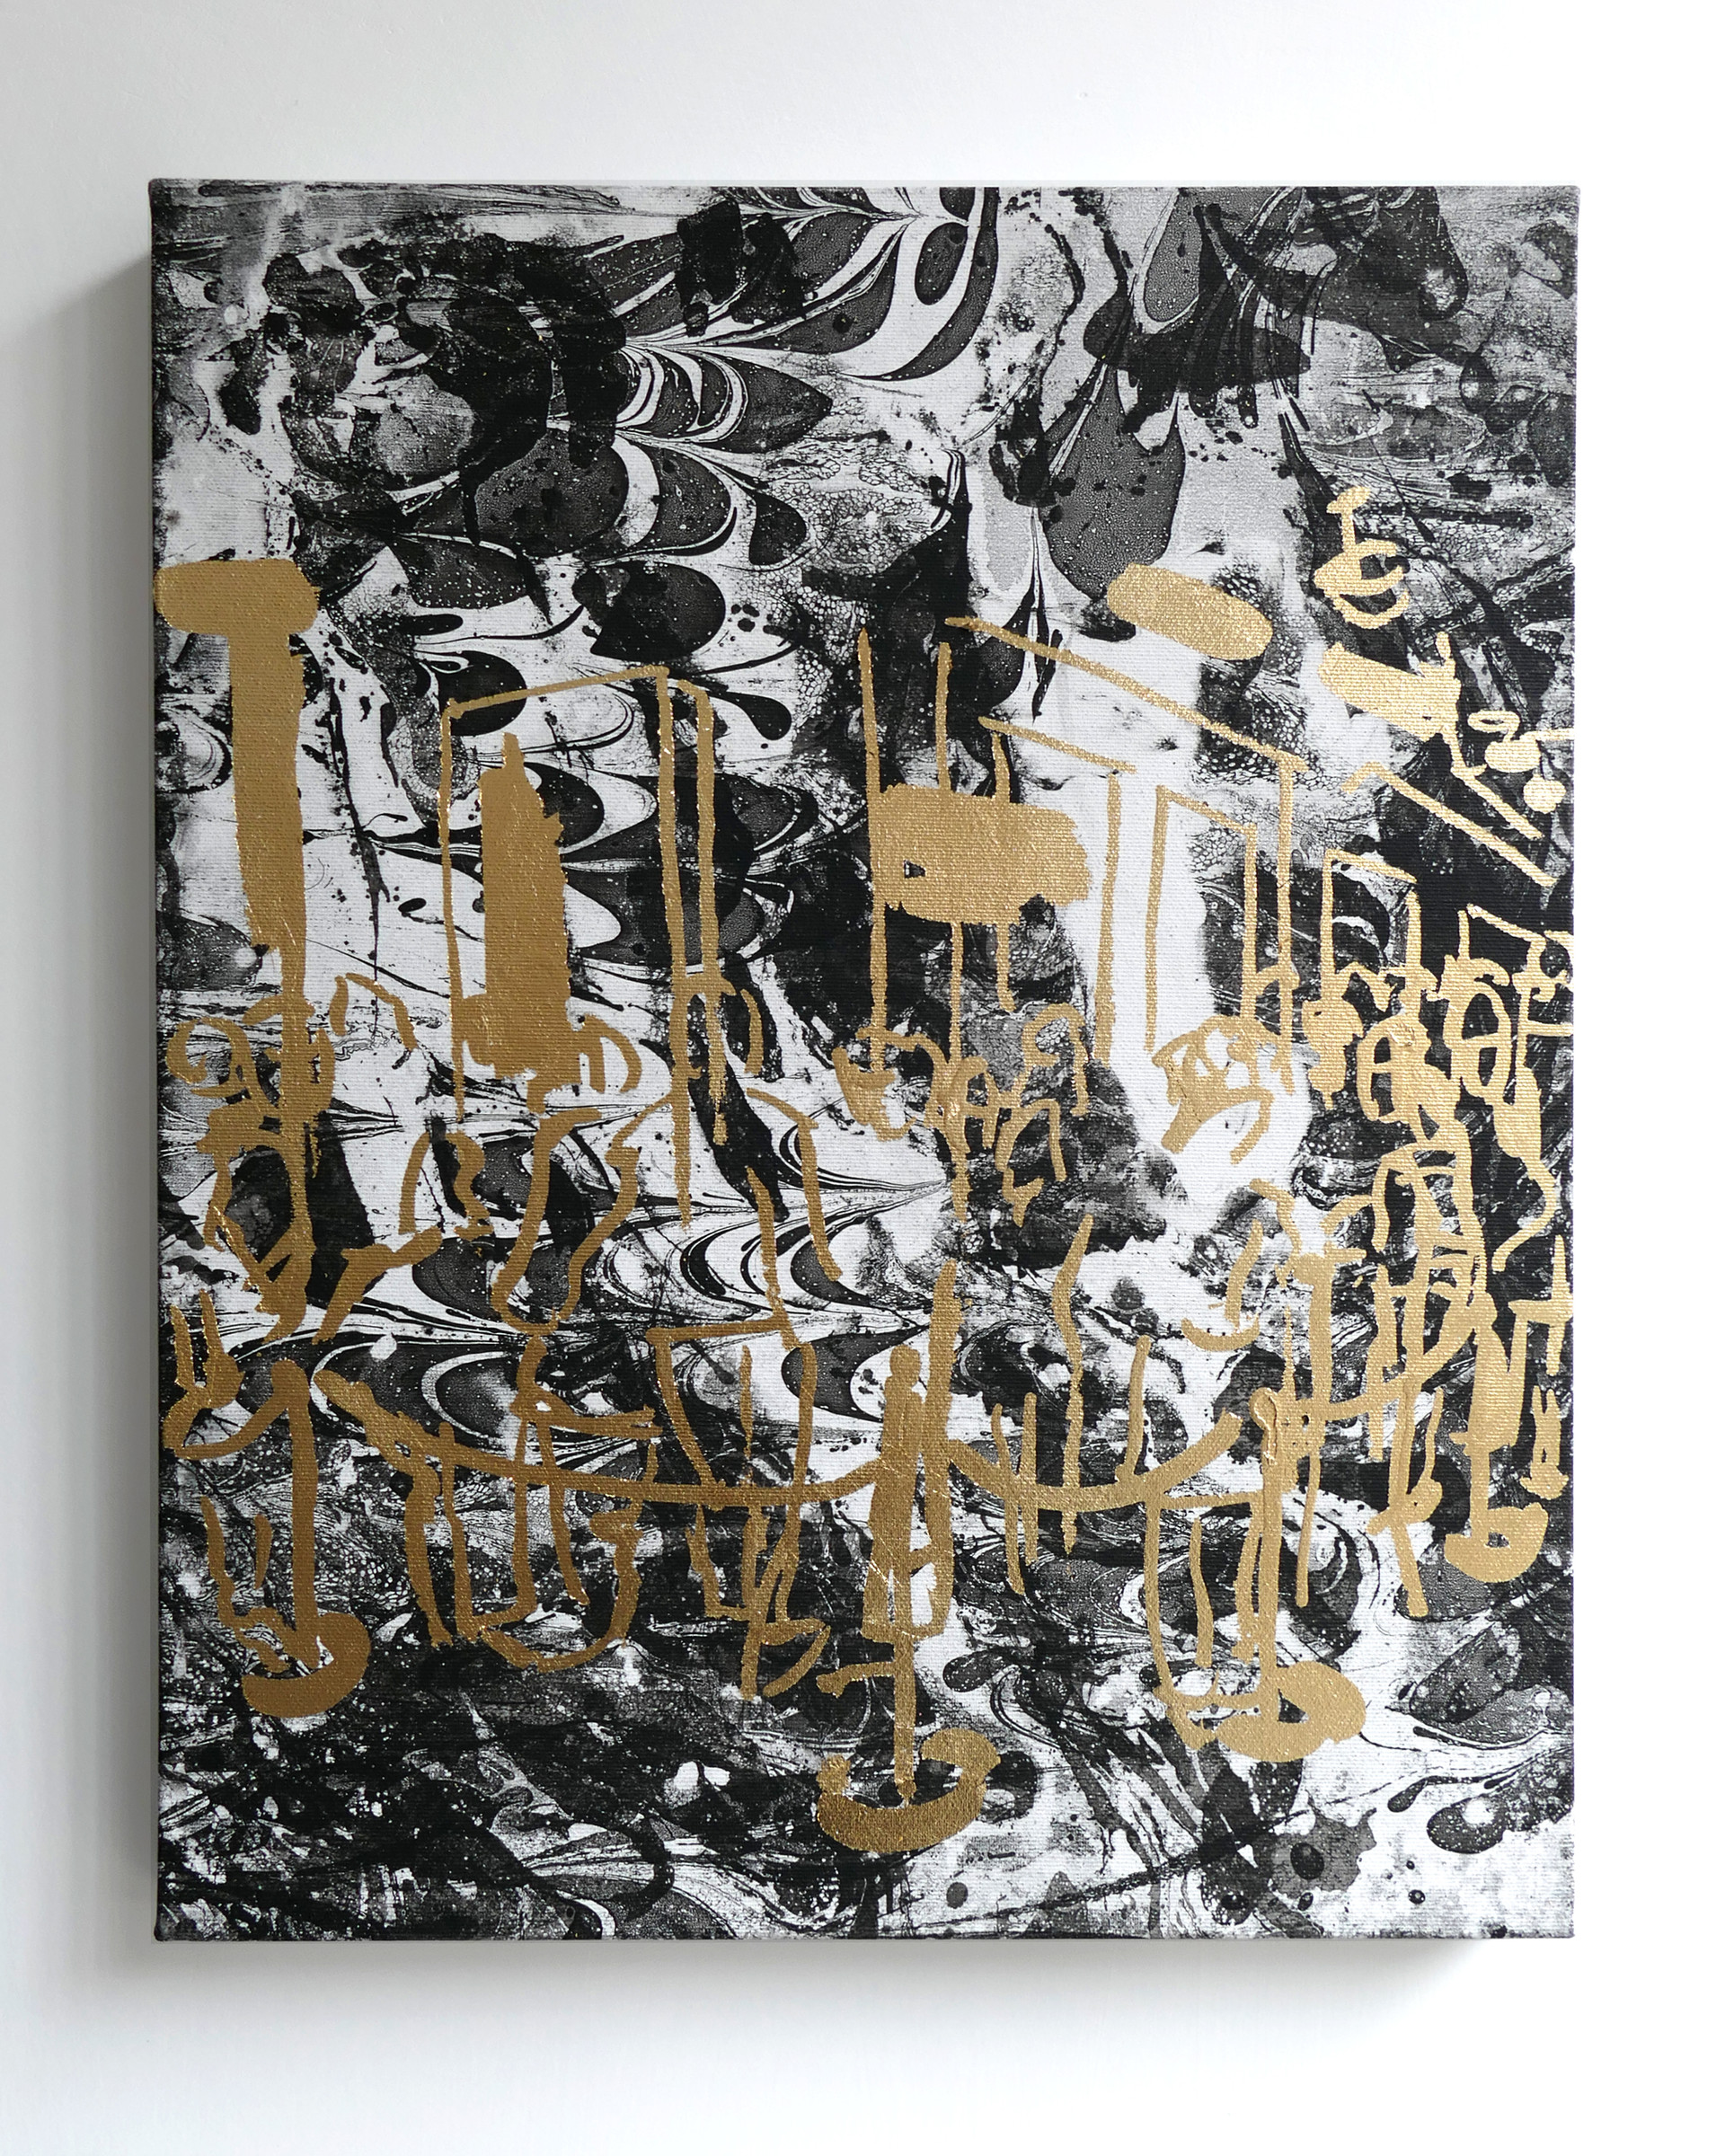 Shopping queue 2019 Gilding glue, gold foil on oil marbled canvas 40x50cm